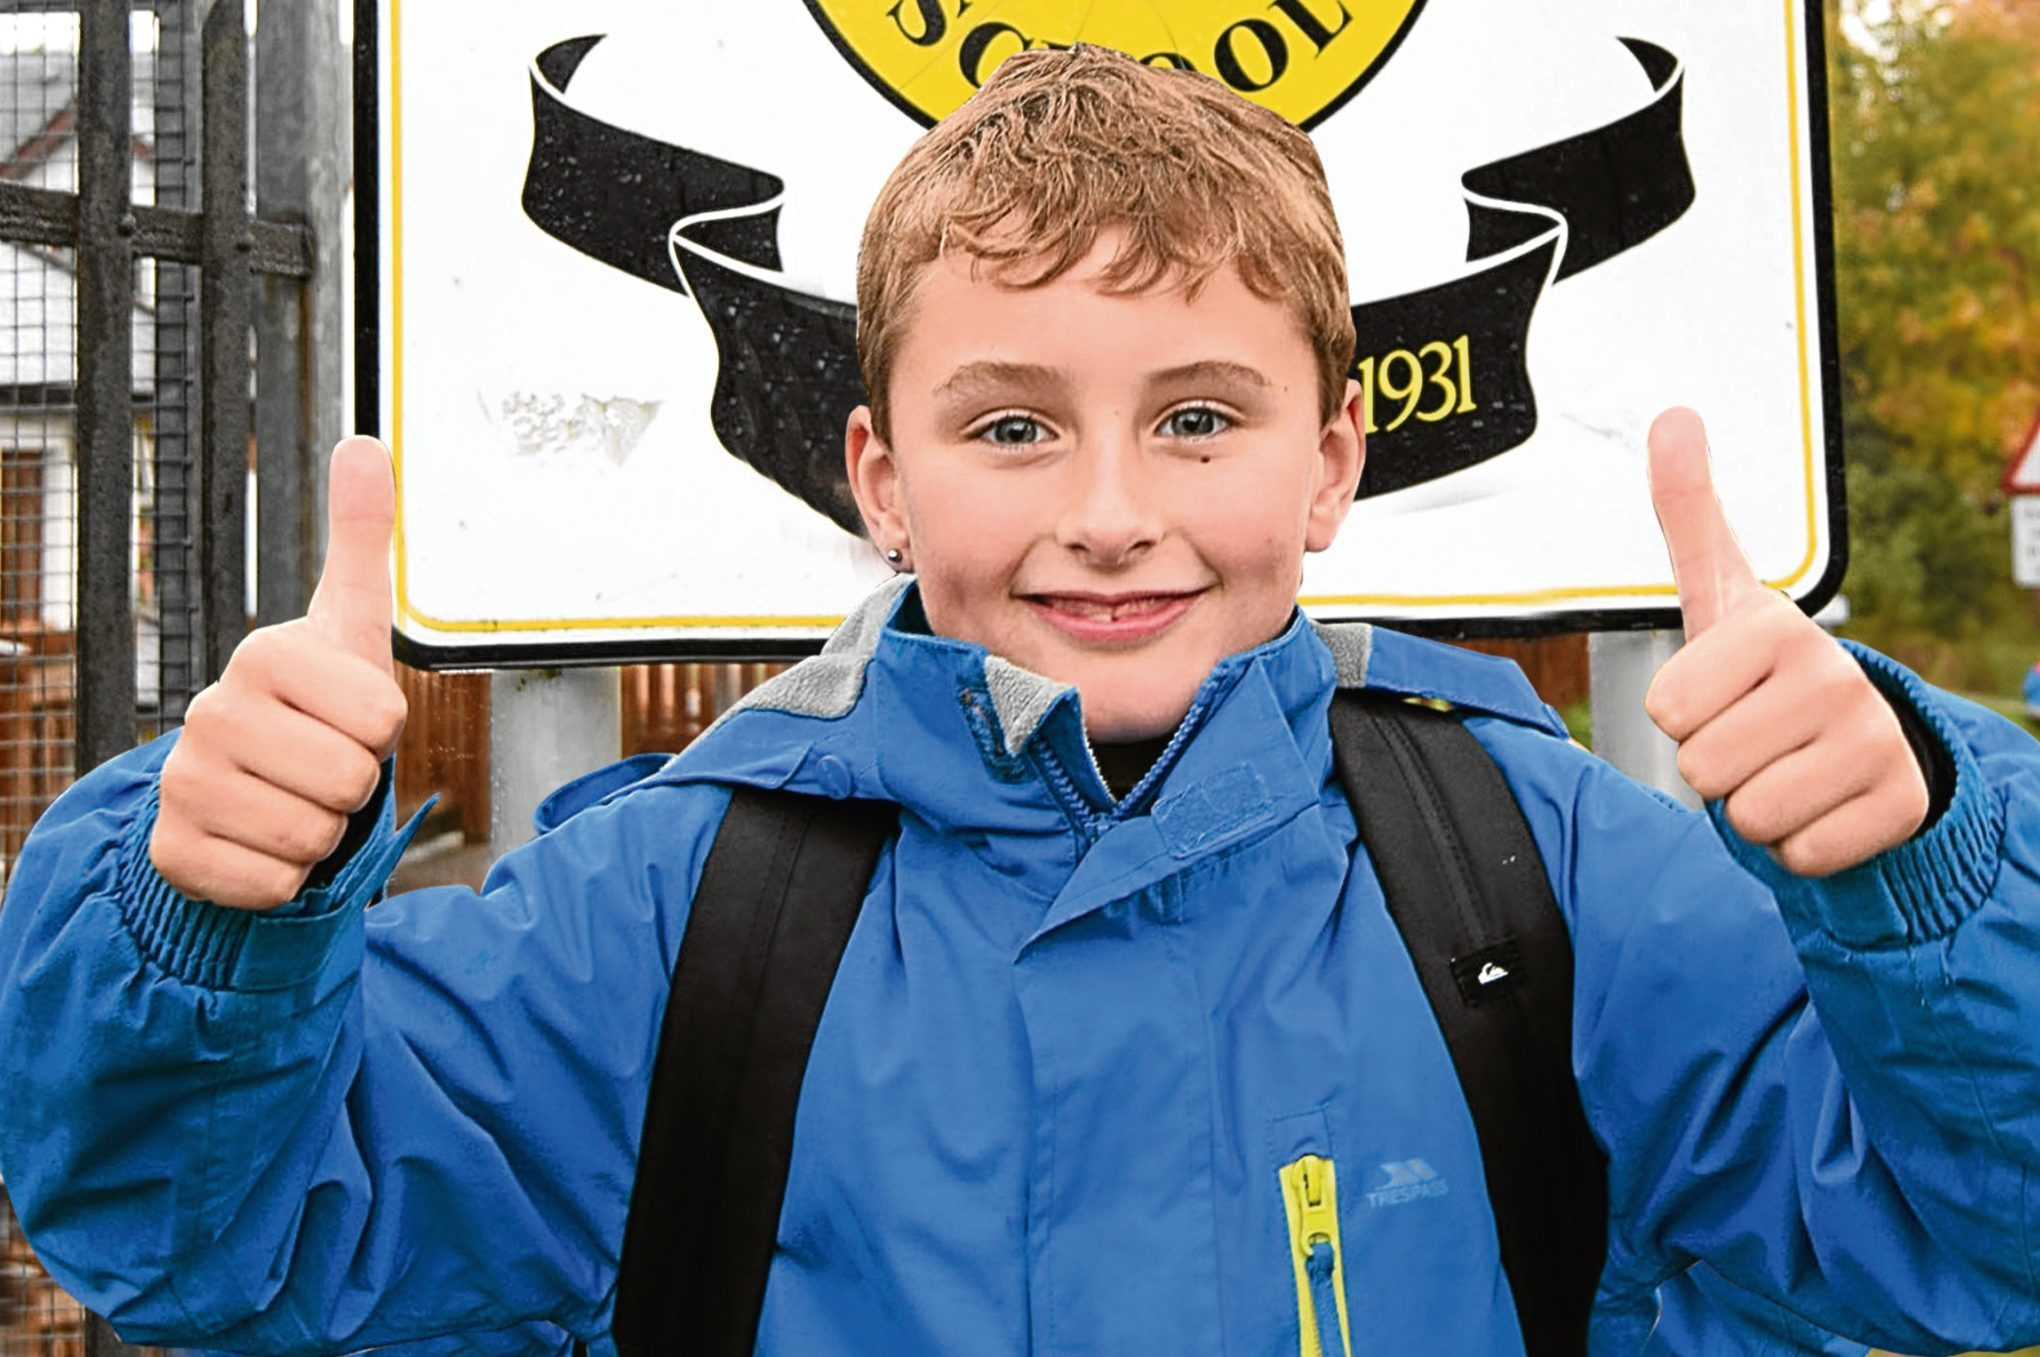 The move got the thumbs up from pupils at the time (Iain Ferguson / The Write Image)